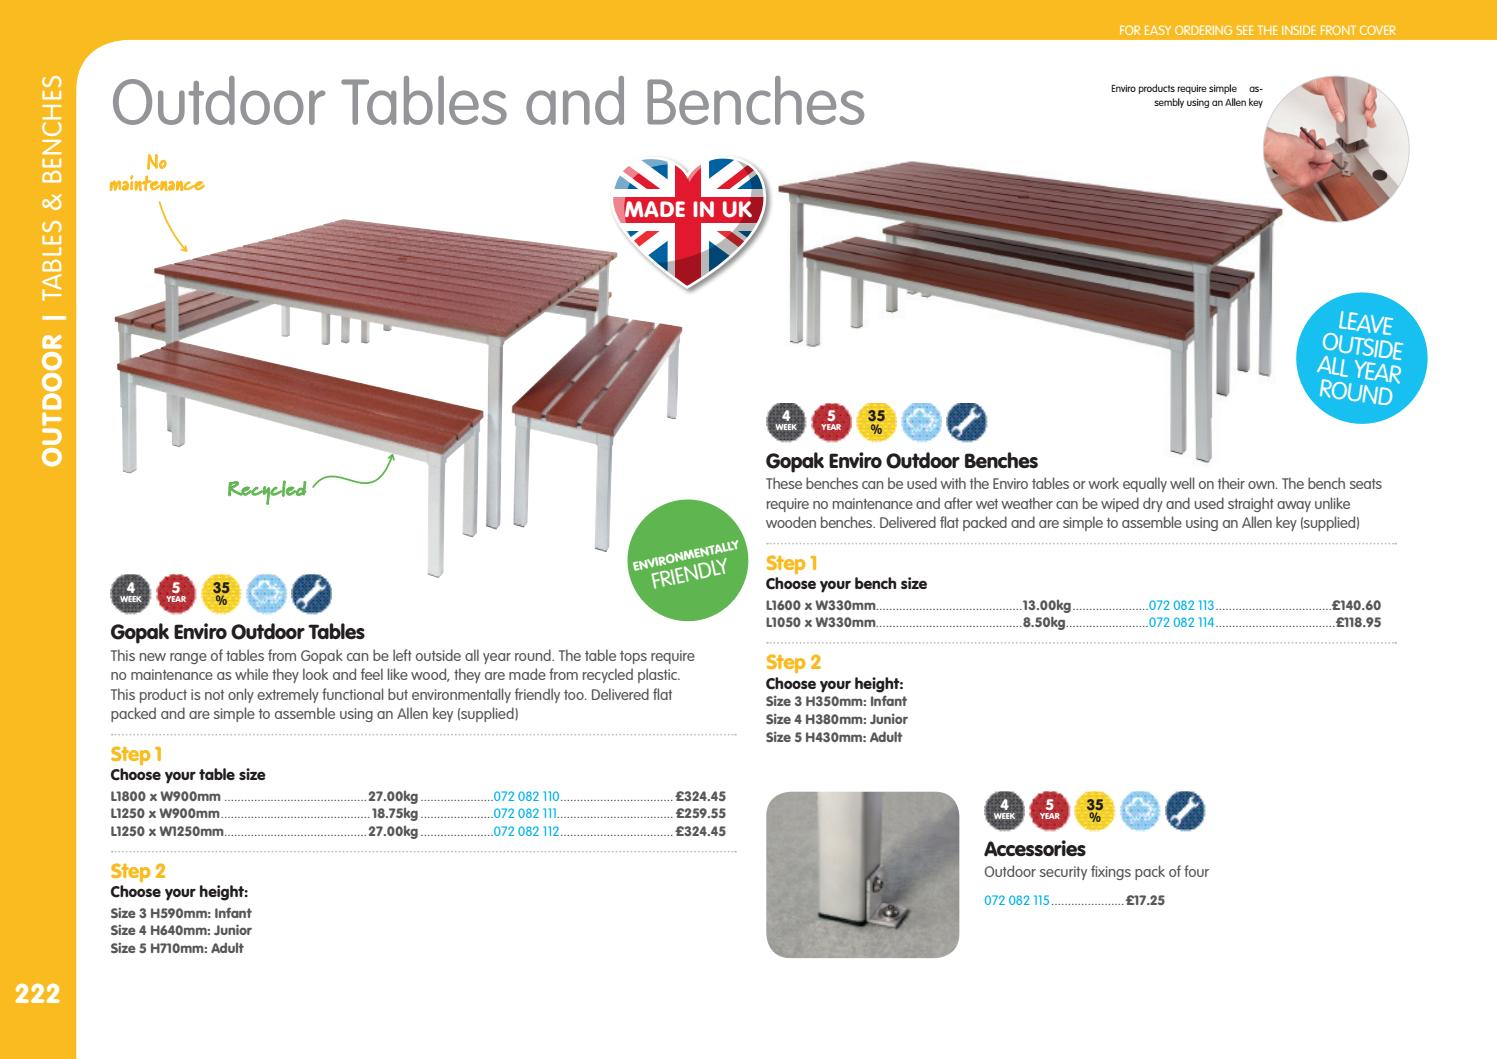 Wondrous Kcs Furniture Catalogue Outdoor Teaching Learning 2017 18 Caraccident5 Cool Chair Designs And Ideas Caraccident5Info